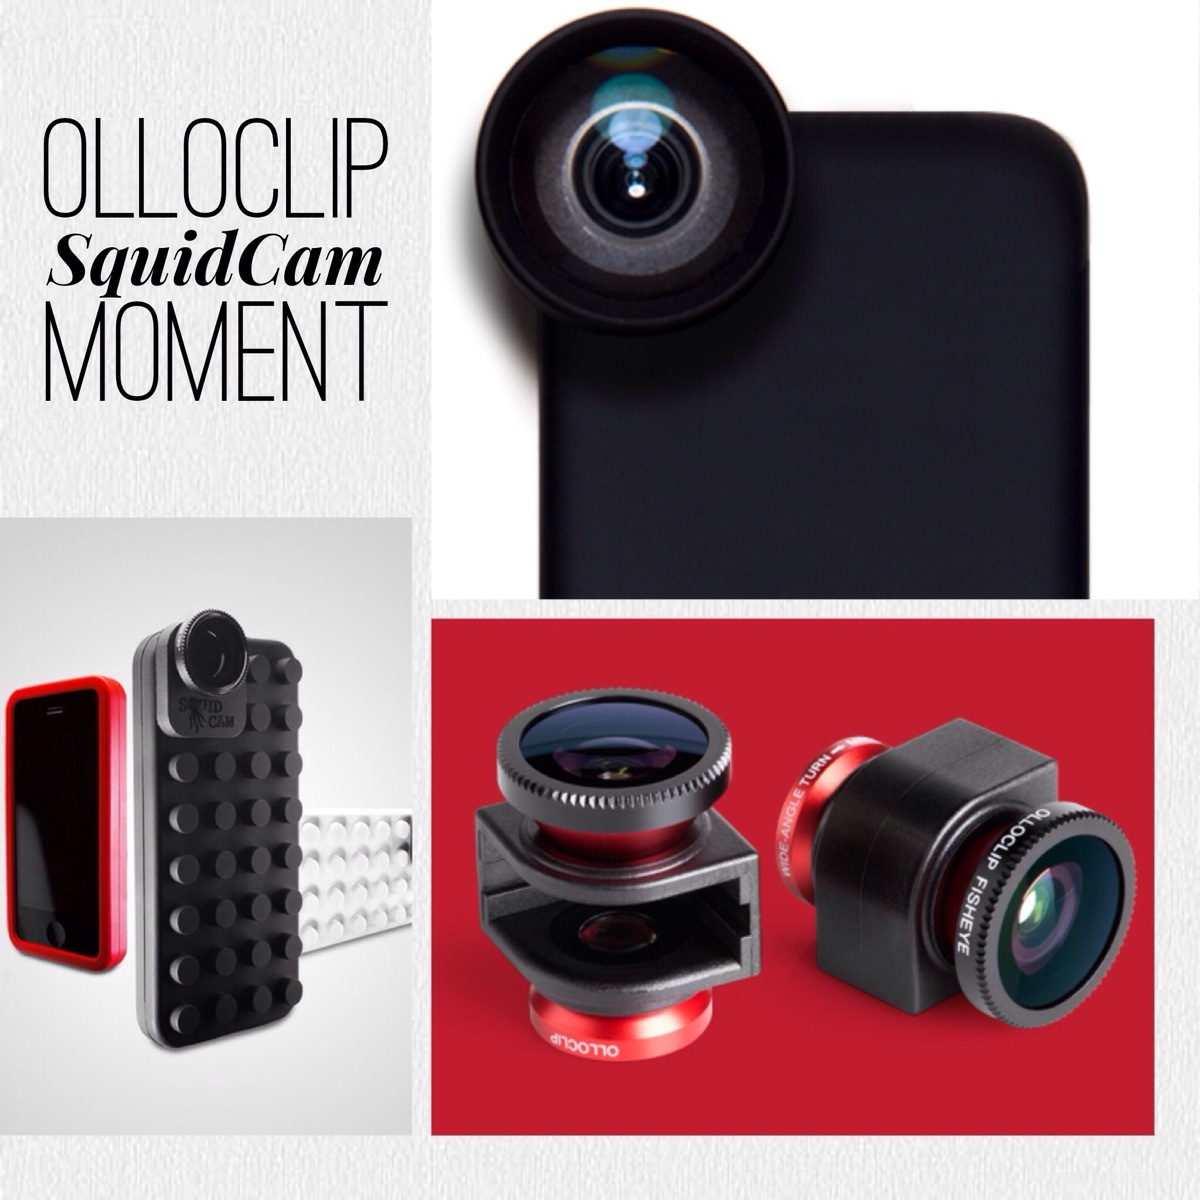 Olloclip vs SquidCam vs Moment Lenses